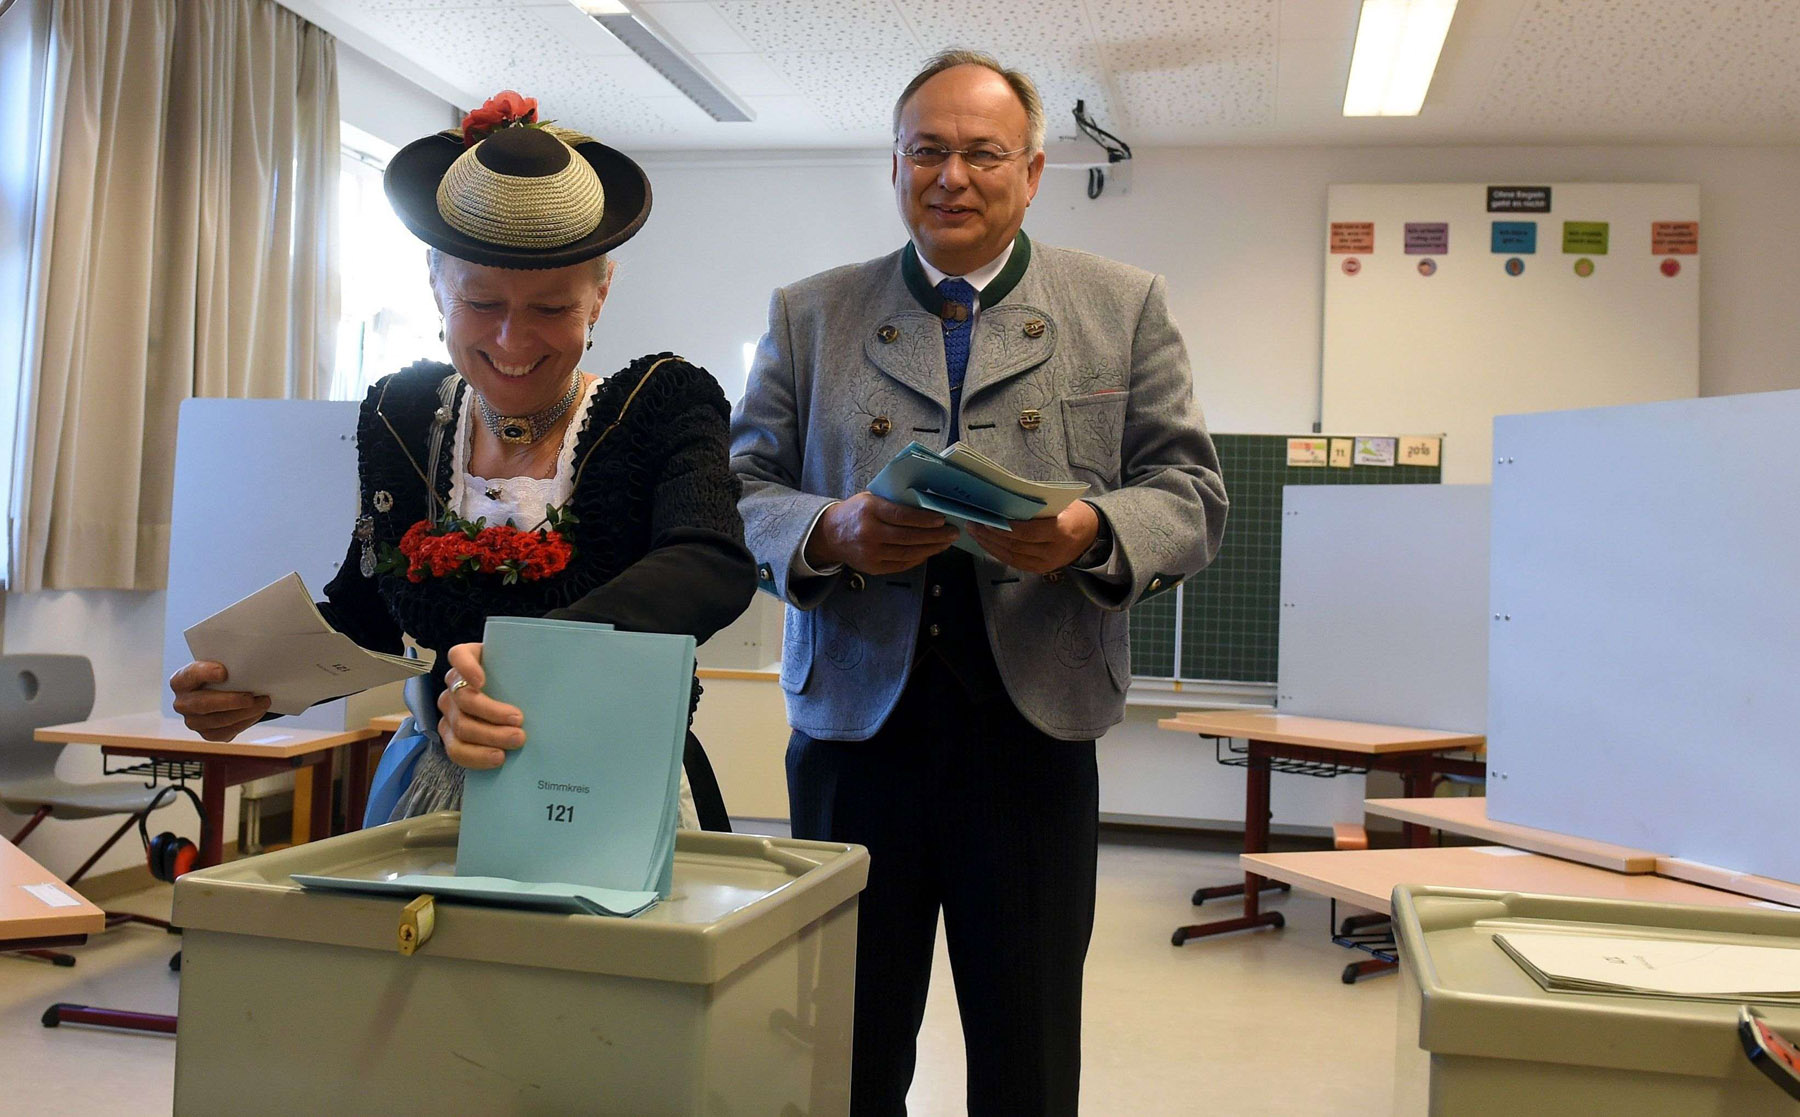 People dressed in traditional Bavarian clothes cast their votes for regional elections at a polling station in Neukirchen in southern Germany, on October 14.  (AFP)